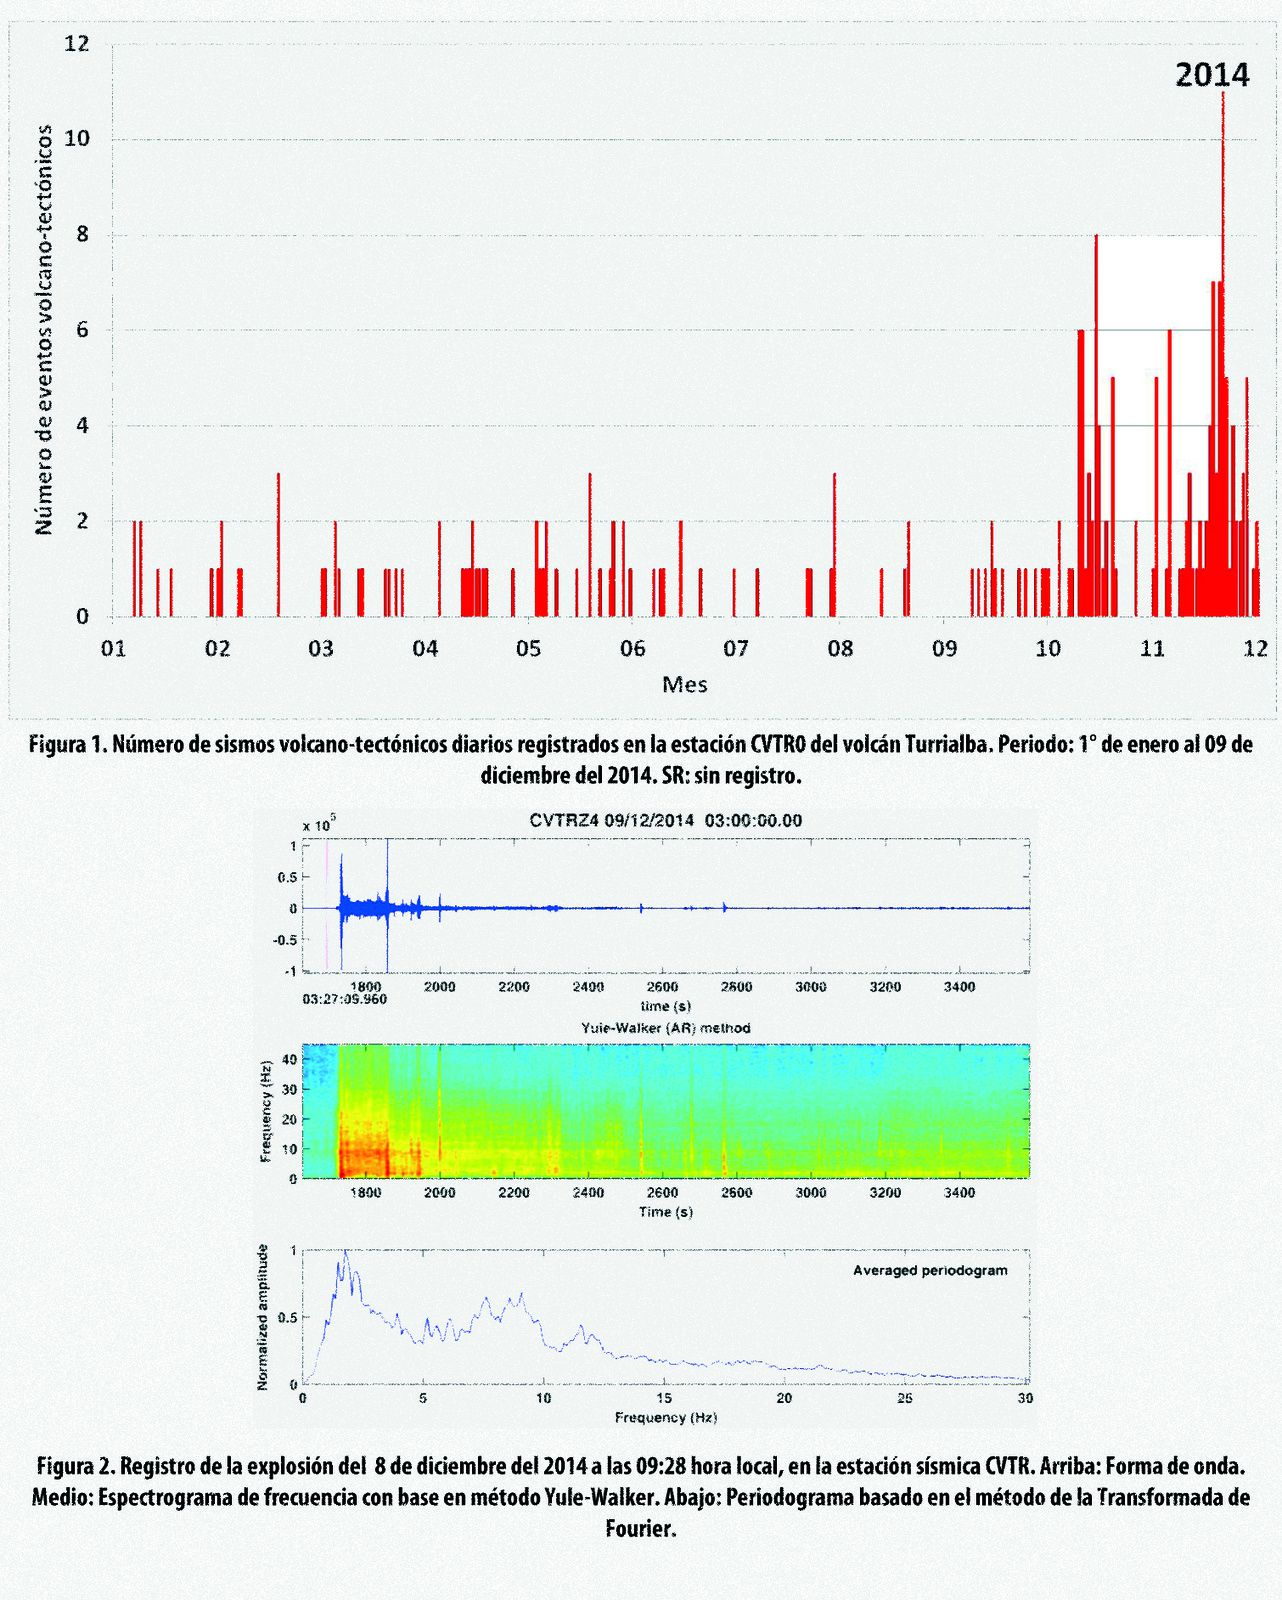 Number of volcano-tectonic earthquakes / graph. top - bottom /Recording of the explosion of 12.08.2014 / 21:28 LT - in relation RSN / Dr Mauricio Mora Fernández